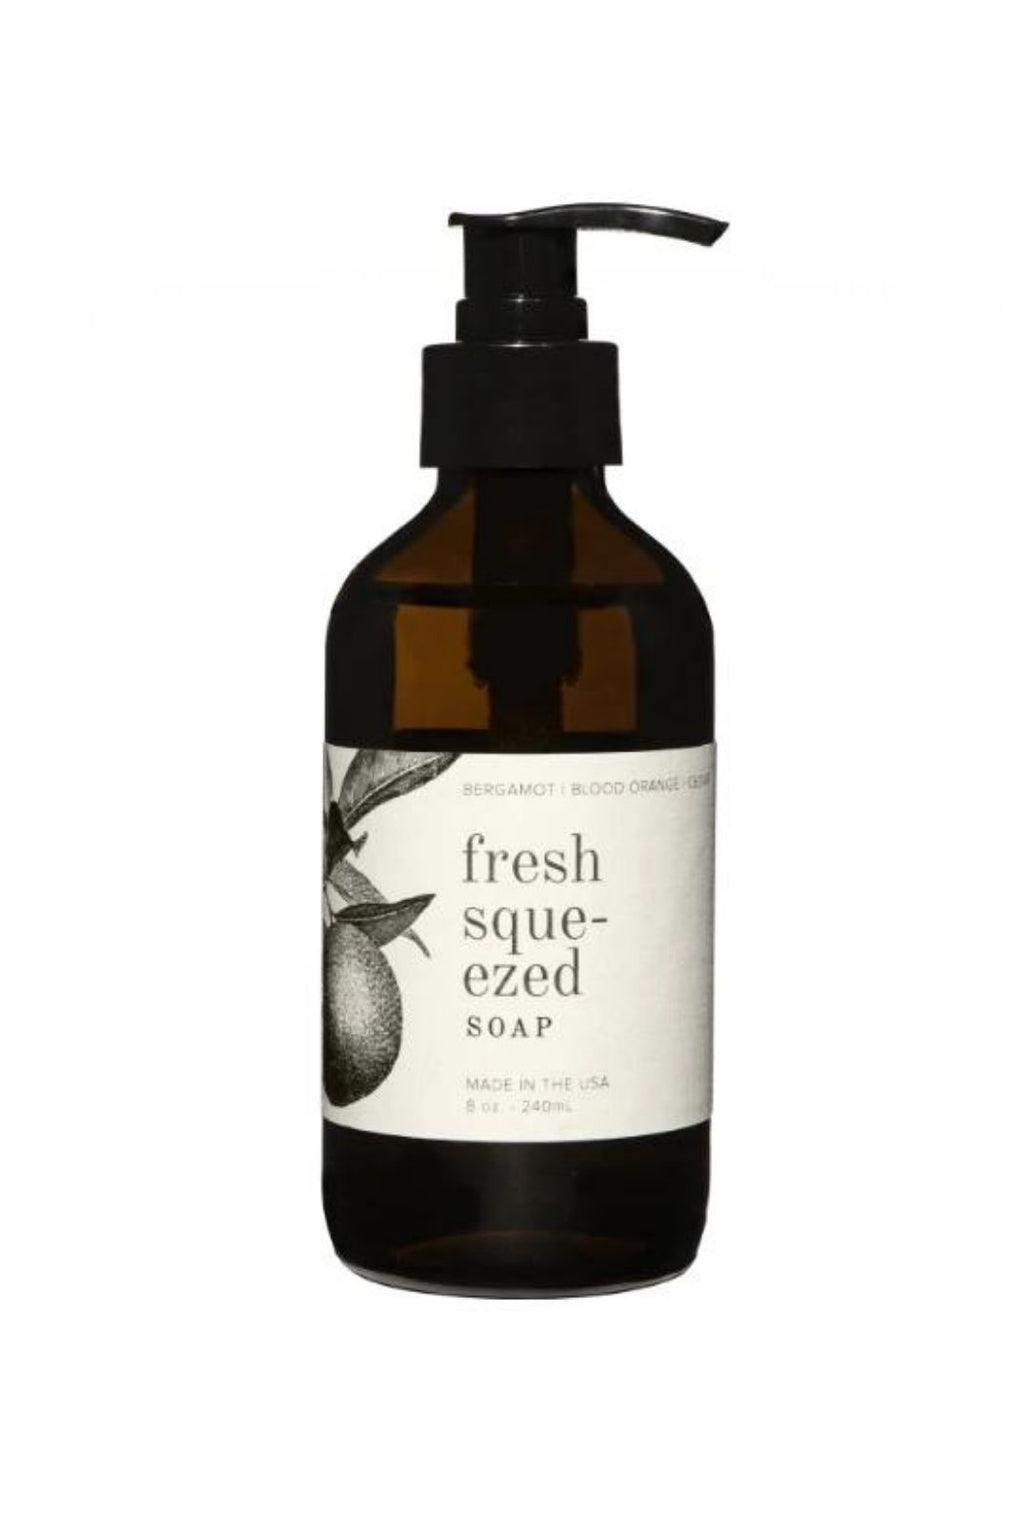 EcoVibe Ava Cardigan in Heather Grey